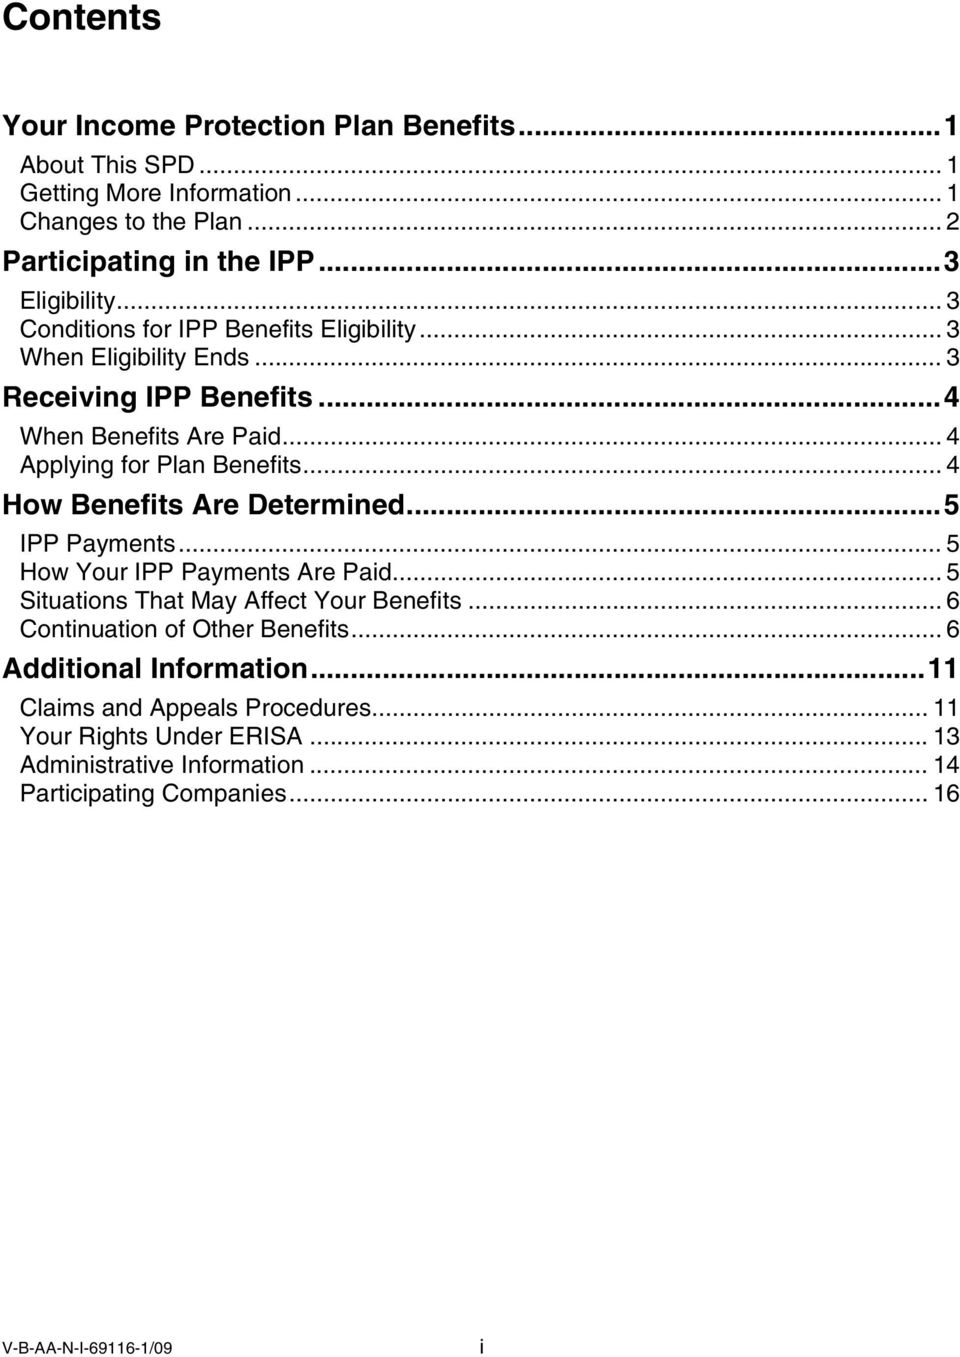 .. 4 How Benefits Are Determined...5 IPP Payments... 5 How Your IPP Payments Are Paid... 5 Situations That May Affect Your Benefits... 6 Continuation of Other Benefits.